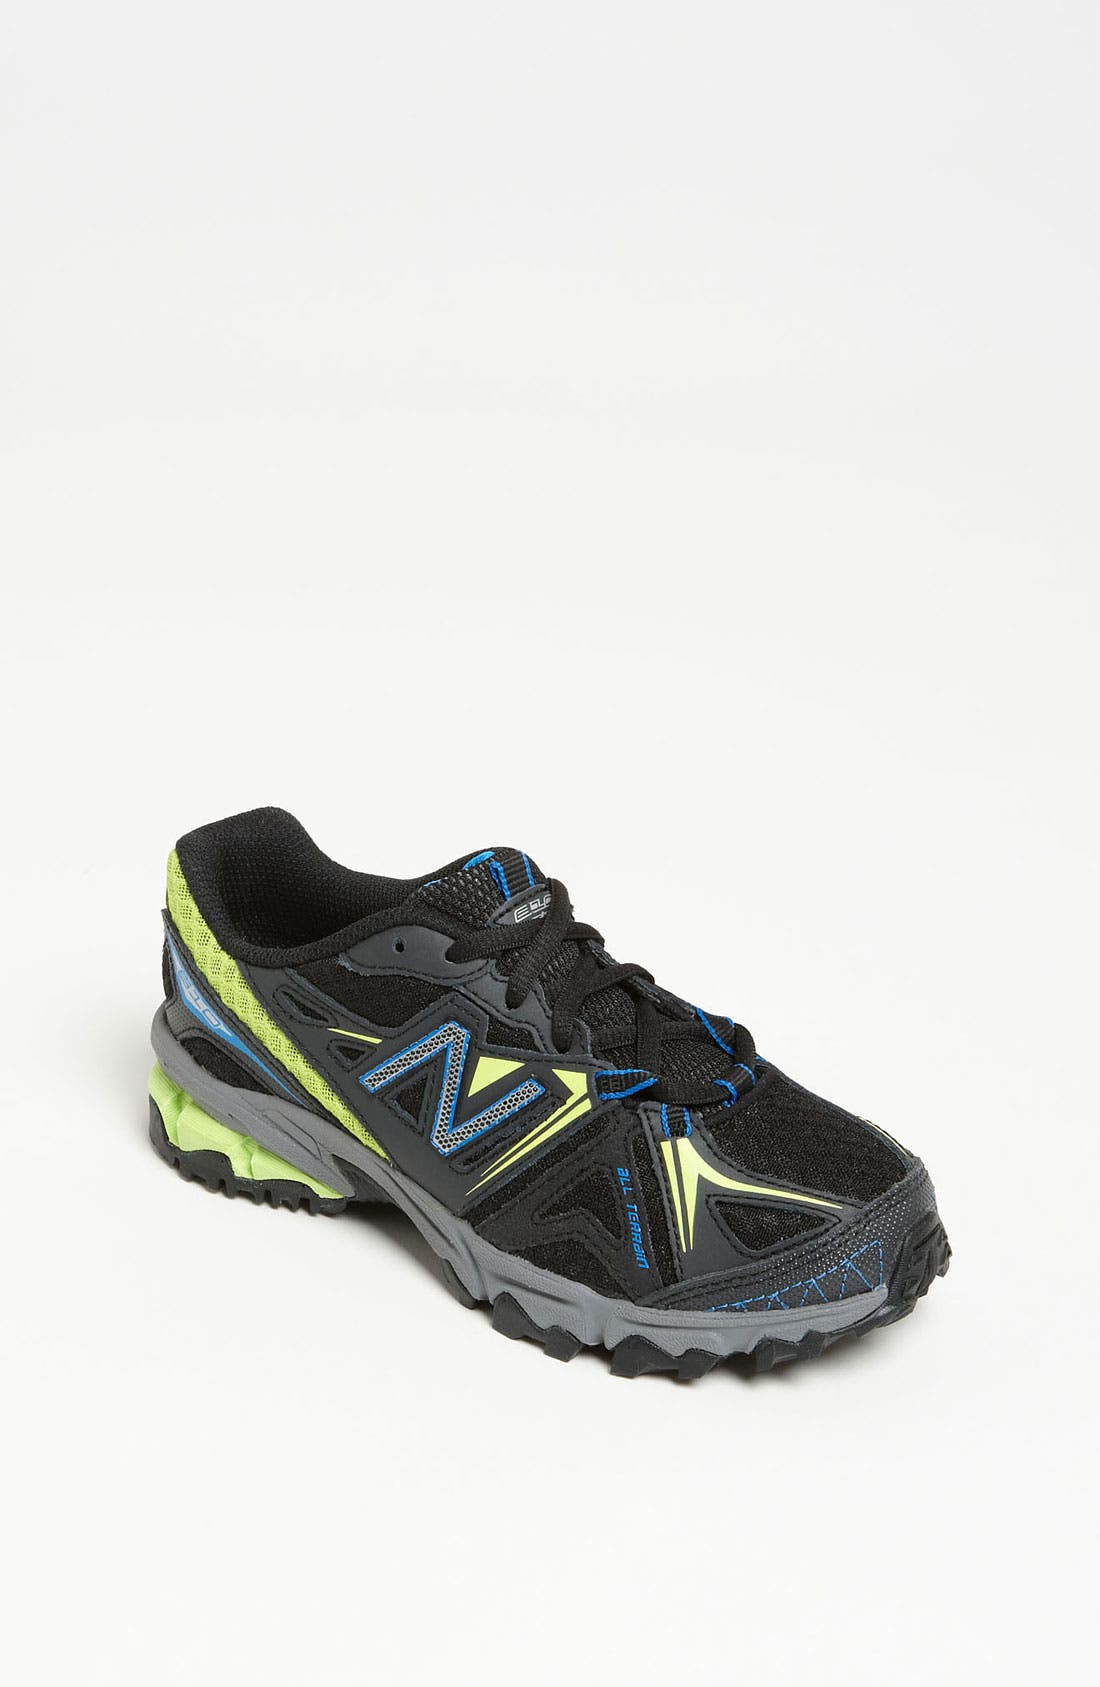 Alternate Image 1 Selected - New Balance 'Takedown 610' Trail Running Shoe (Toddler, Little Kid & Big Kid)